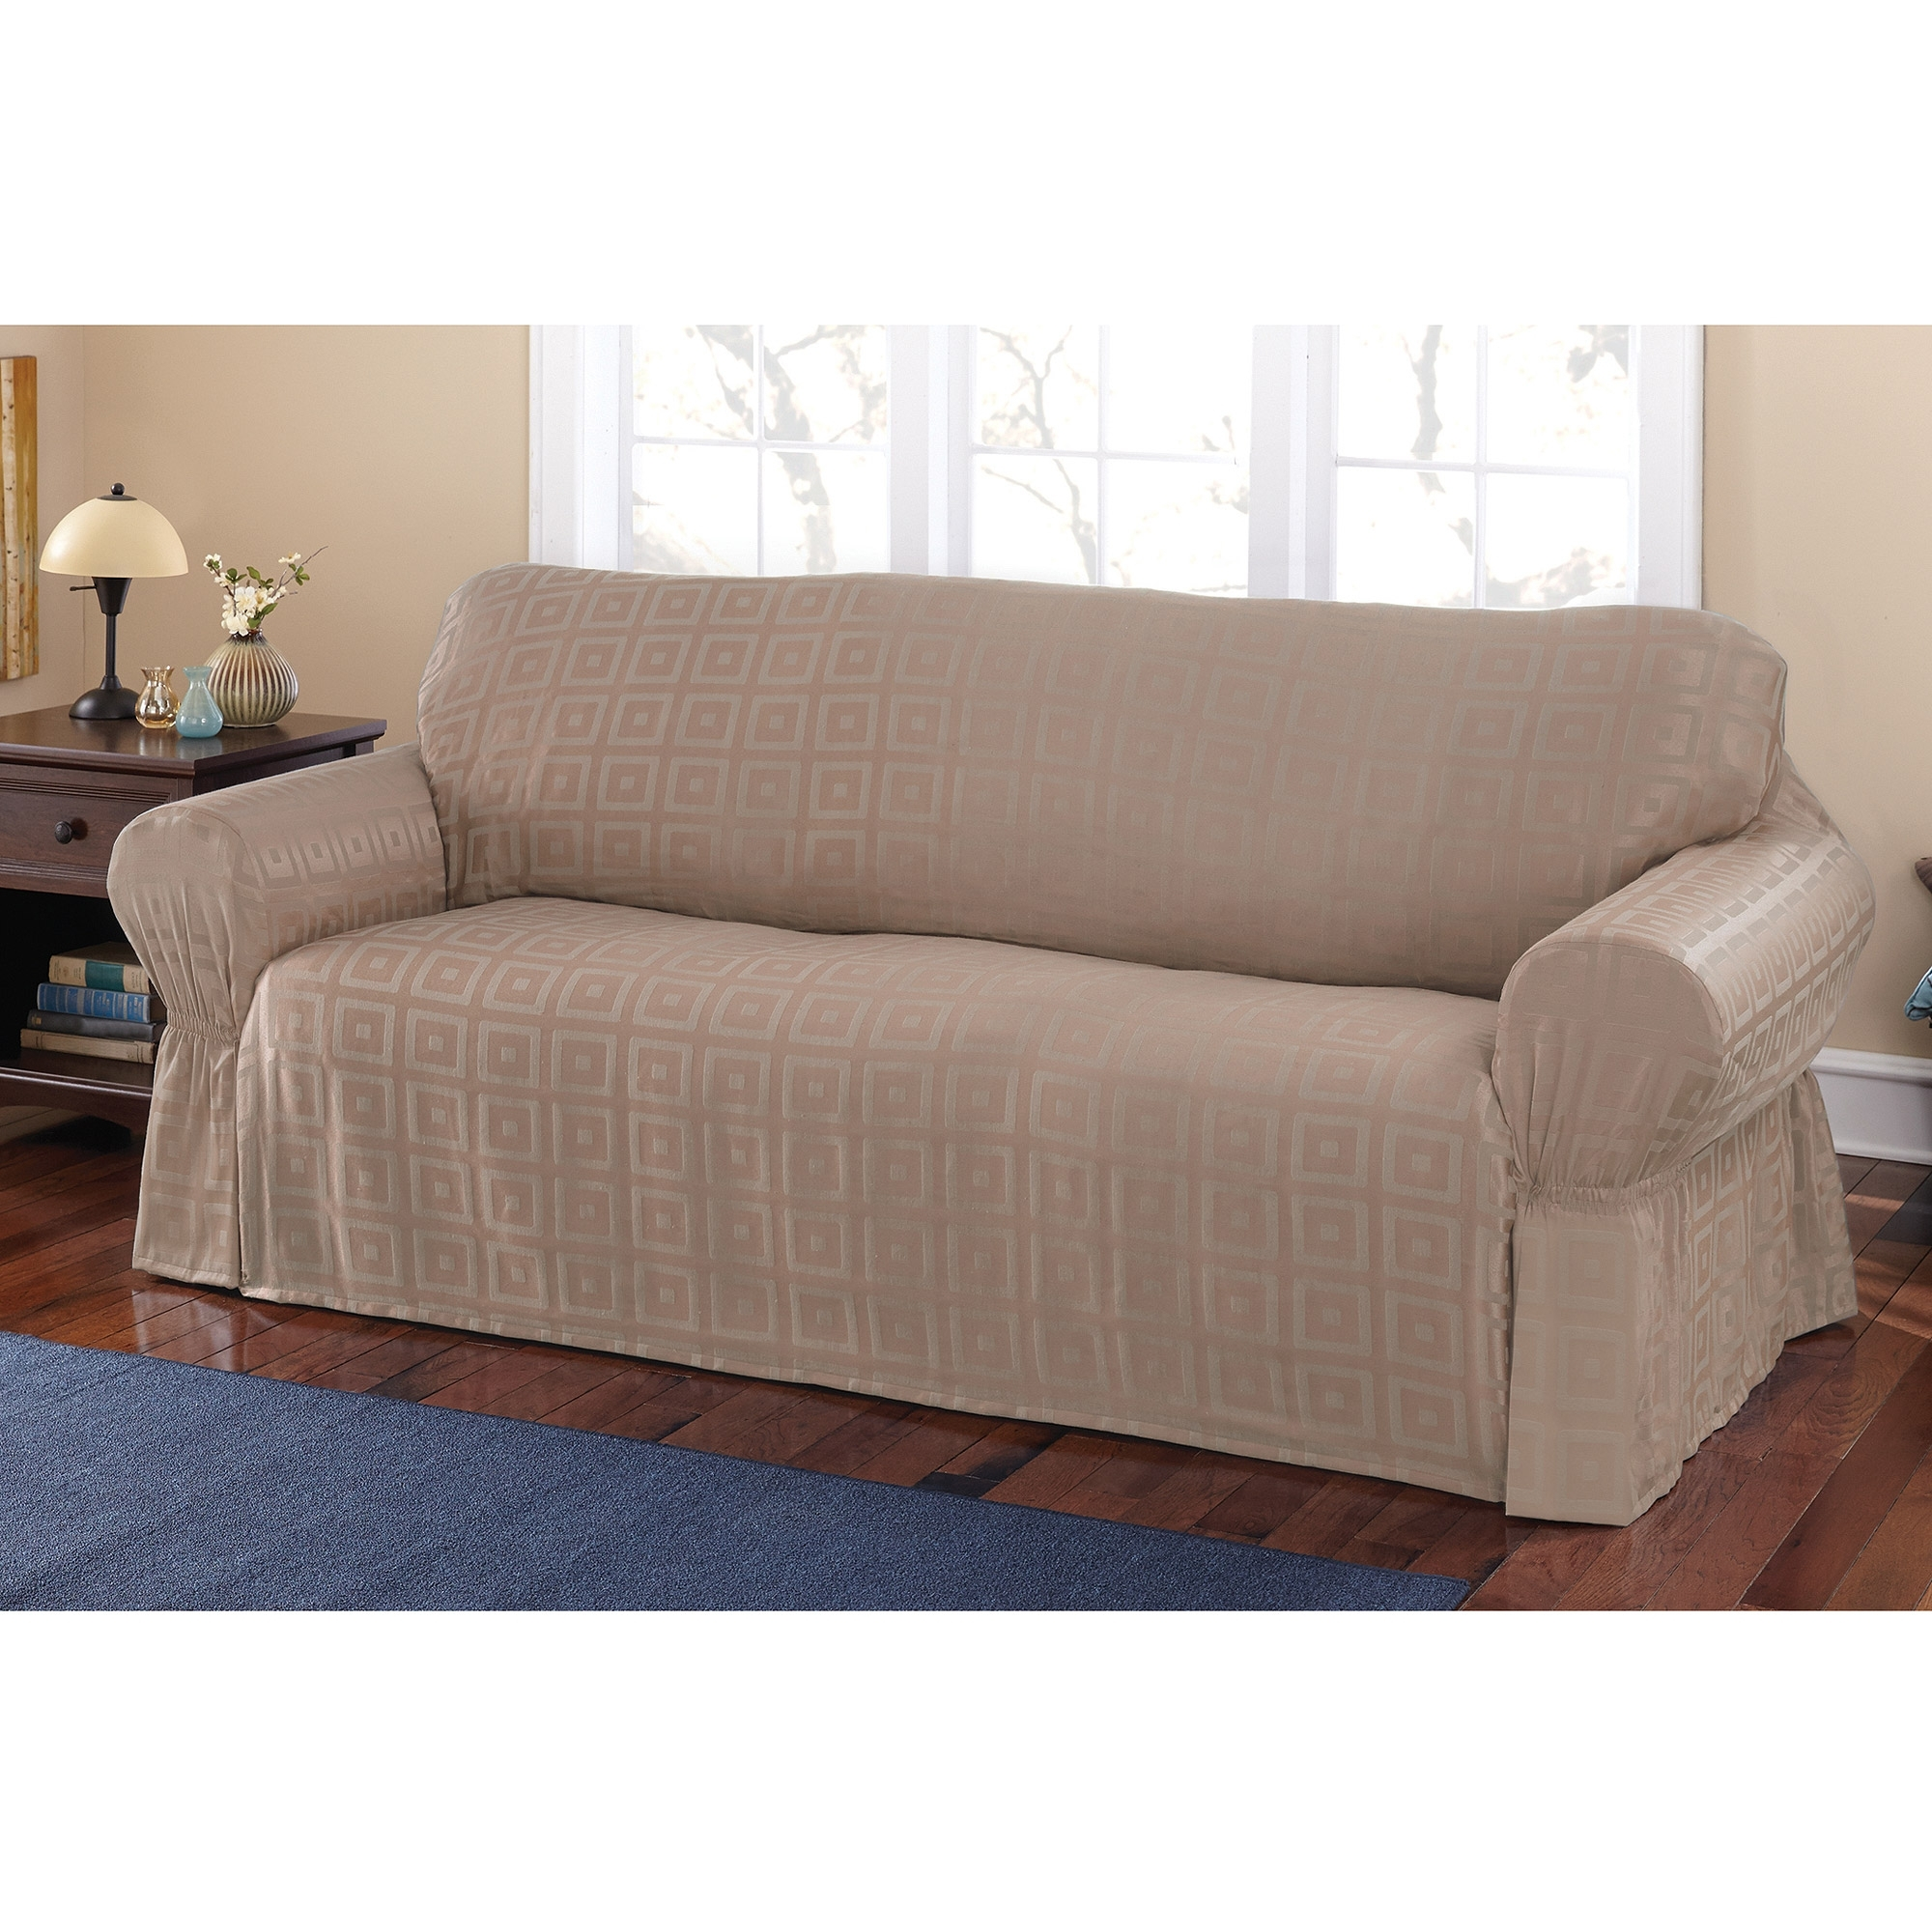 Mainstays Sherwood Slipcover Sofa – Walmart With Regard To Famous Sectional Sofas At Walmart (View 5 of 15)